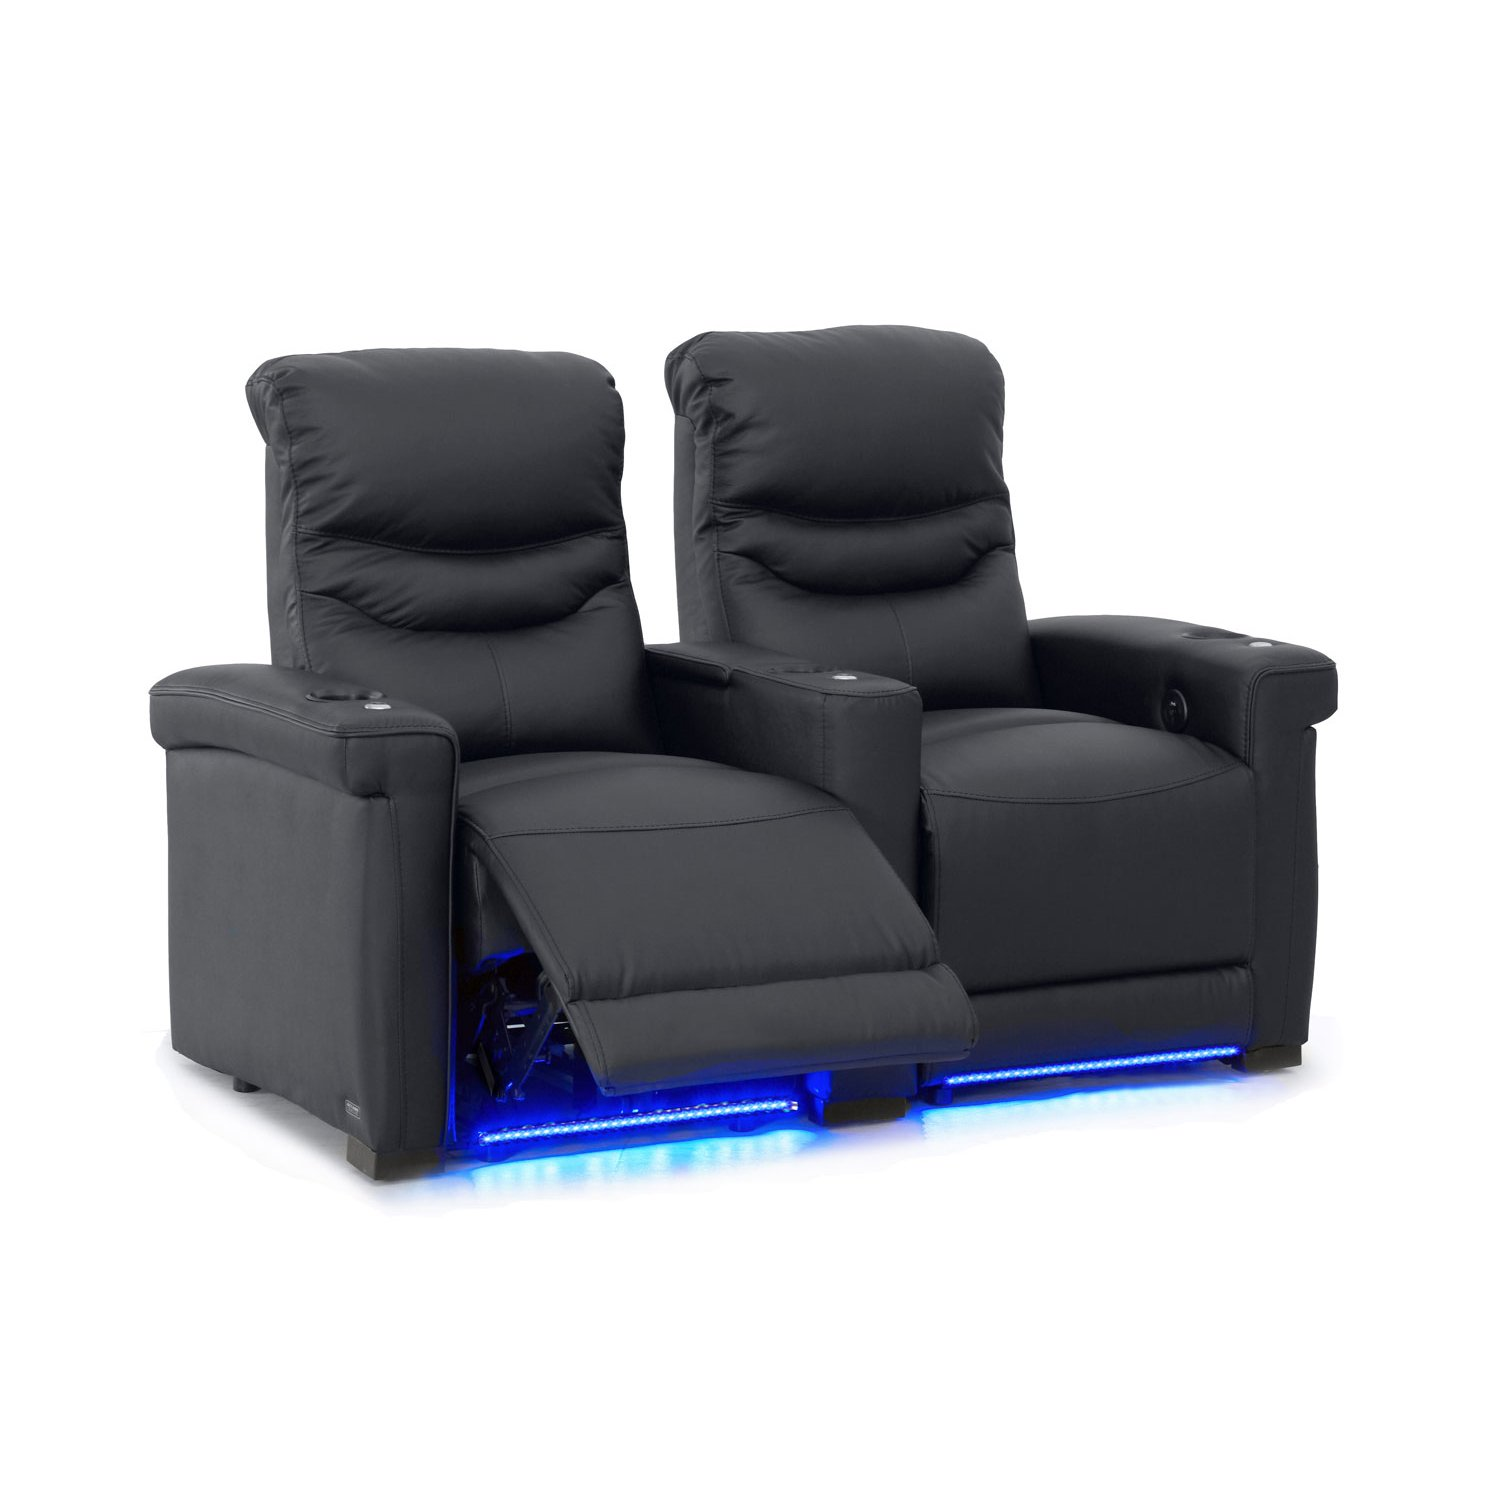 Octane Challenger XS700 Row of 2 Seats, Straight Row in Black Leather with Power Recline by Octane Seating